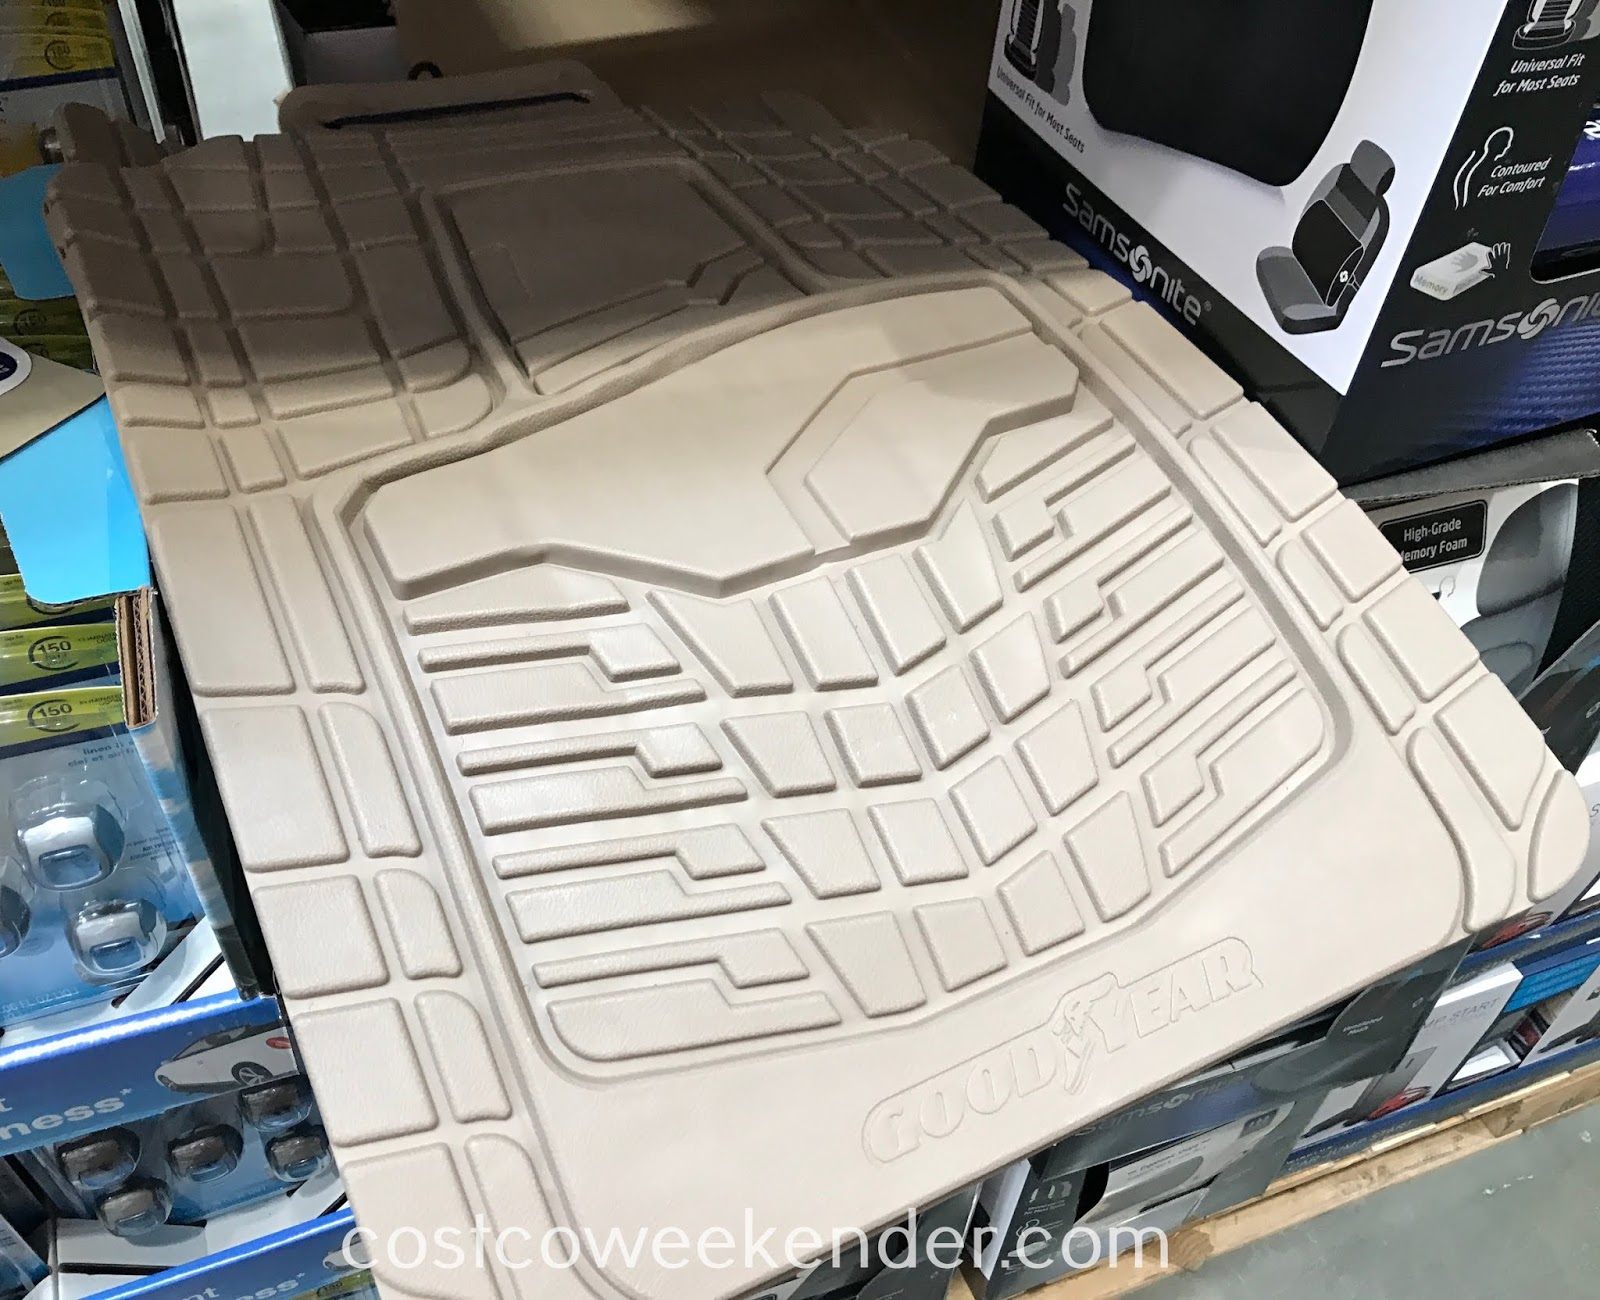 Protect your car's interior with Goodyear All-weather Floor Mats